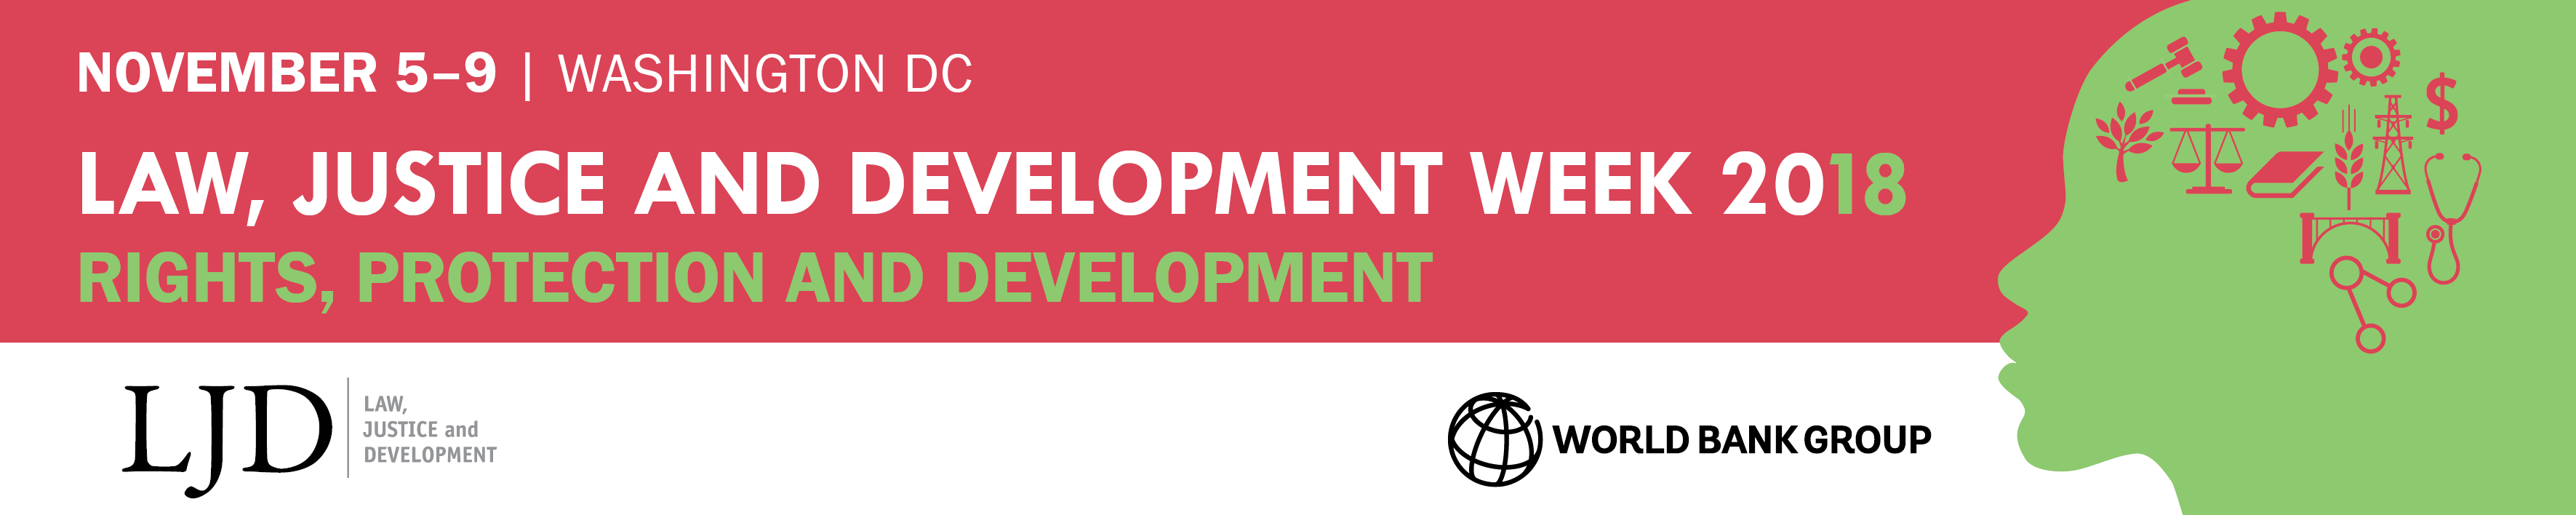 Law, Justice and Development Week 2018